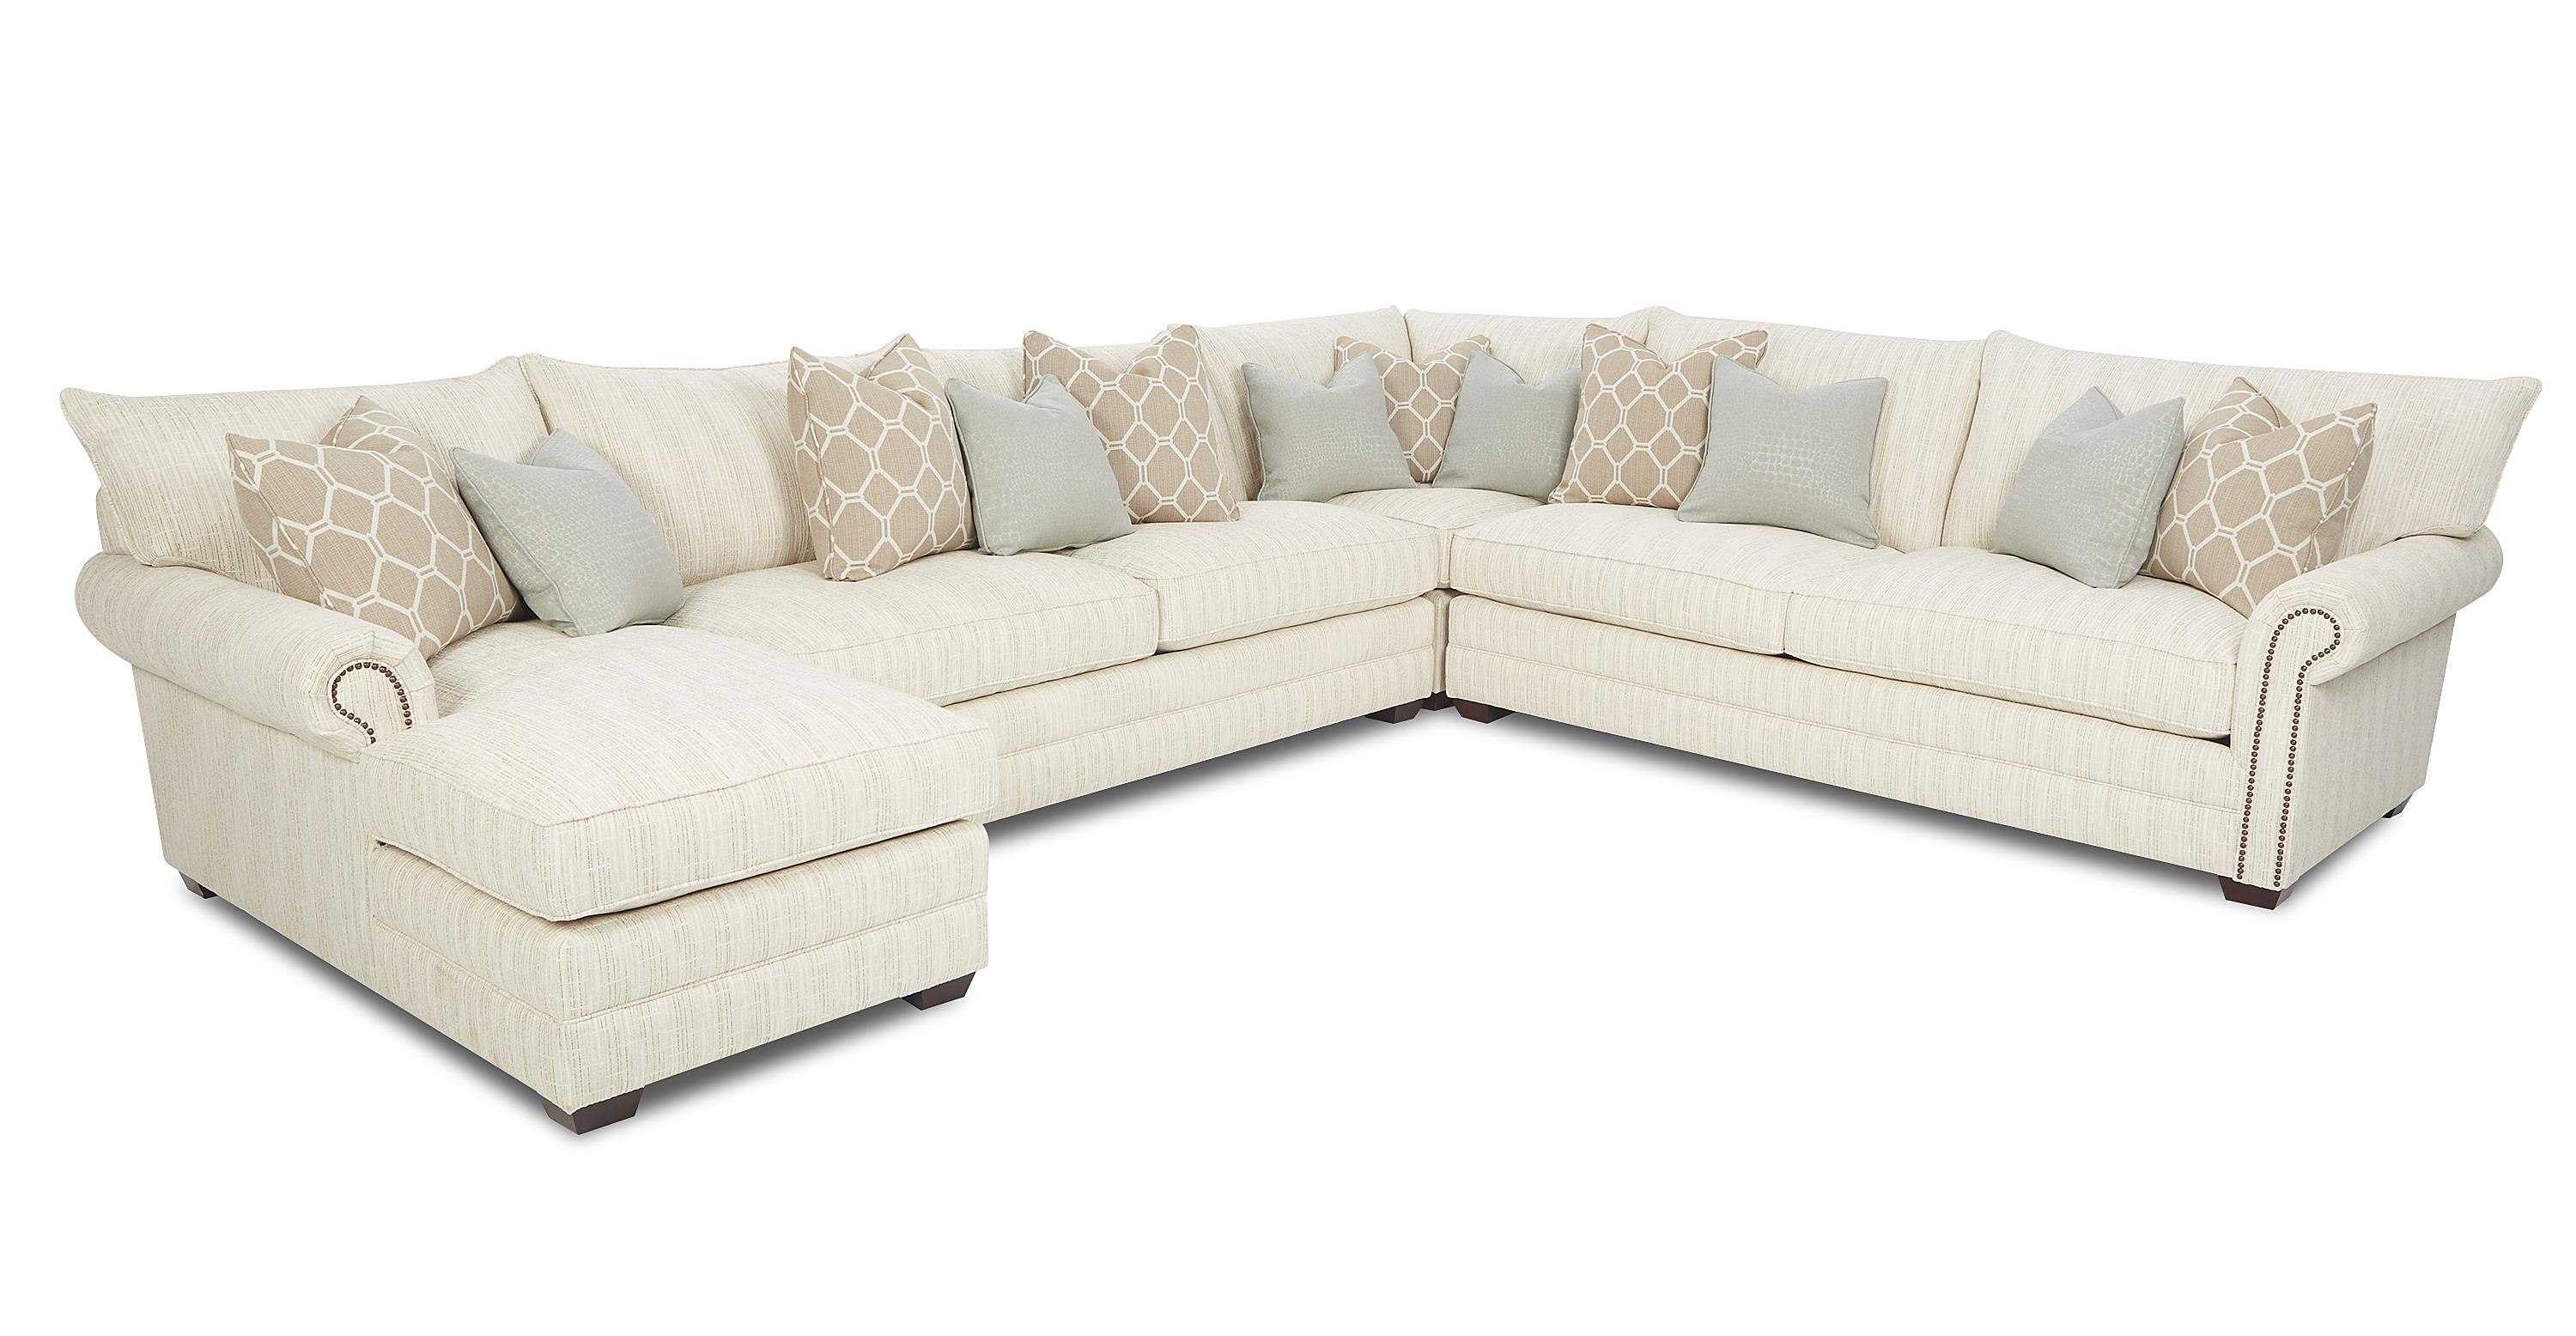 Traditional Sectional Sofa With Nailhead Trim And Chaise Lounge By